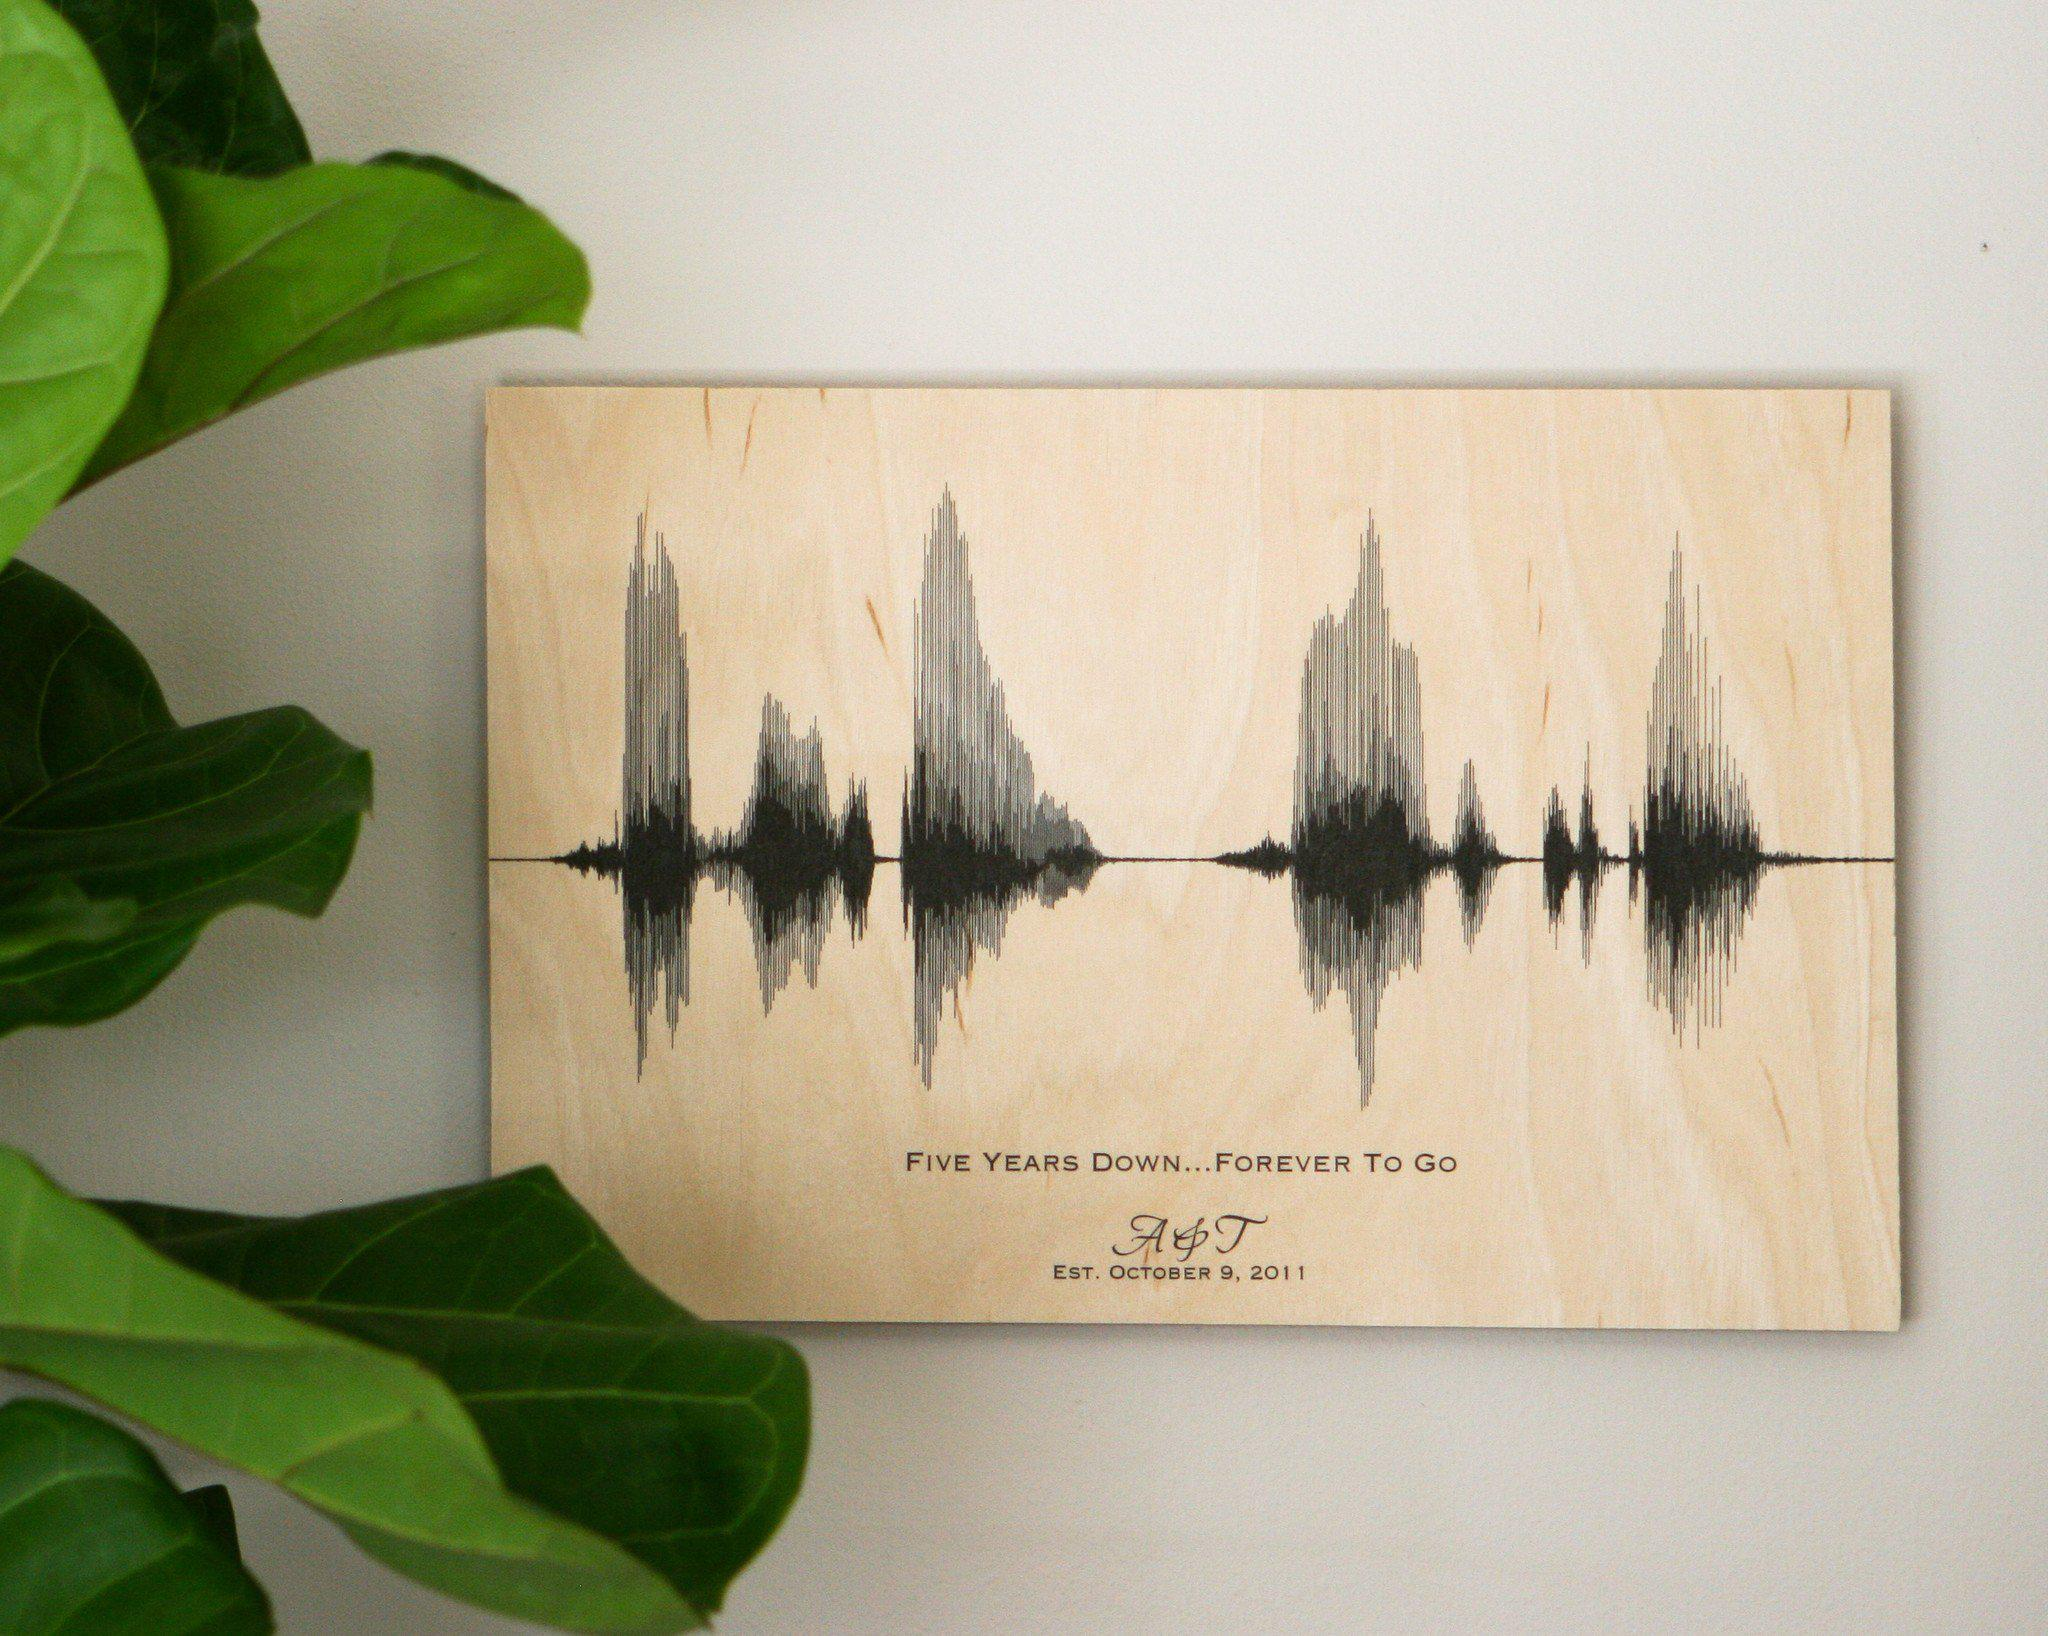 5 Year Wedding Anniversary Gifts on Wood Personalized Sound Wave Art - Artsy Voiceprint & 5 Year Wedding Anniversary Gifts for Men by Year Wood Sound Wave Art ...